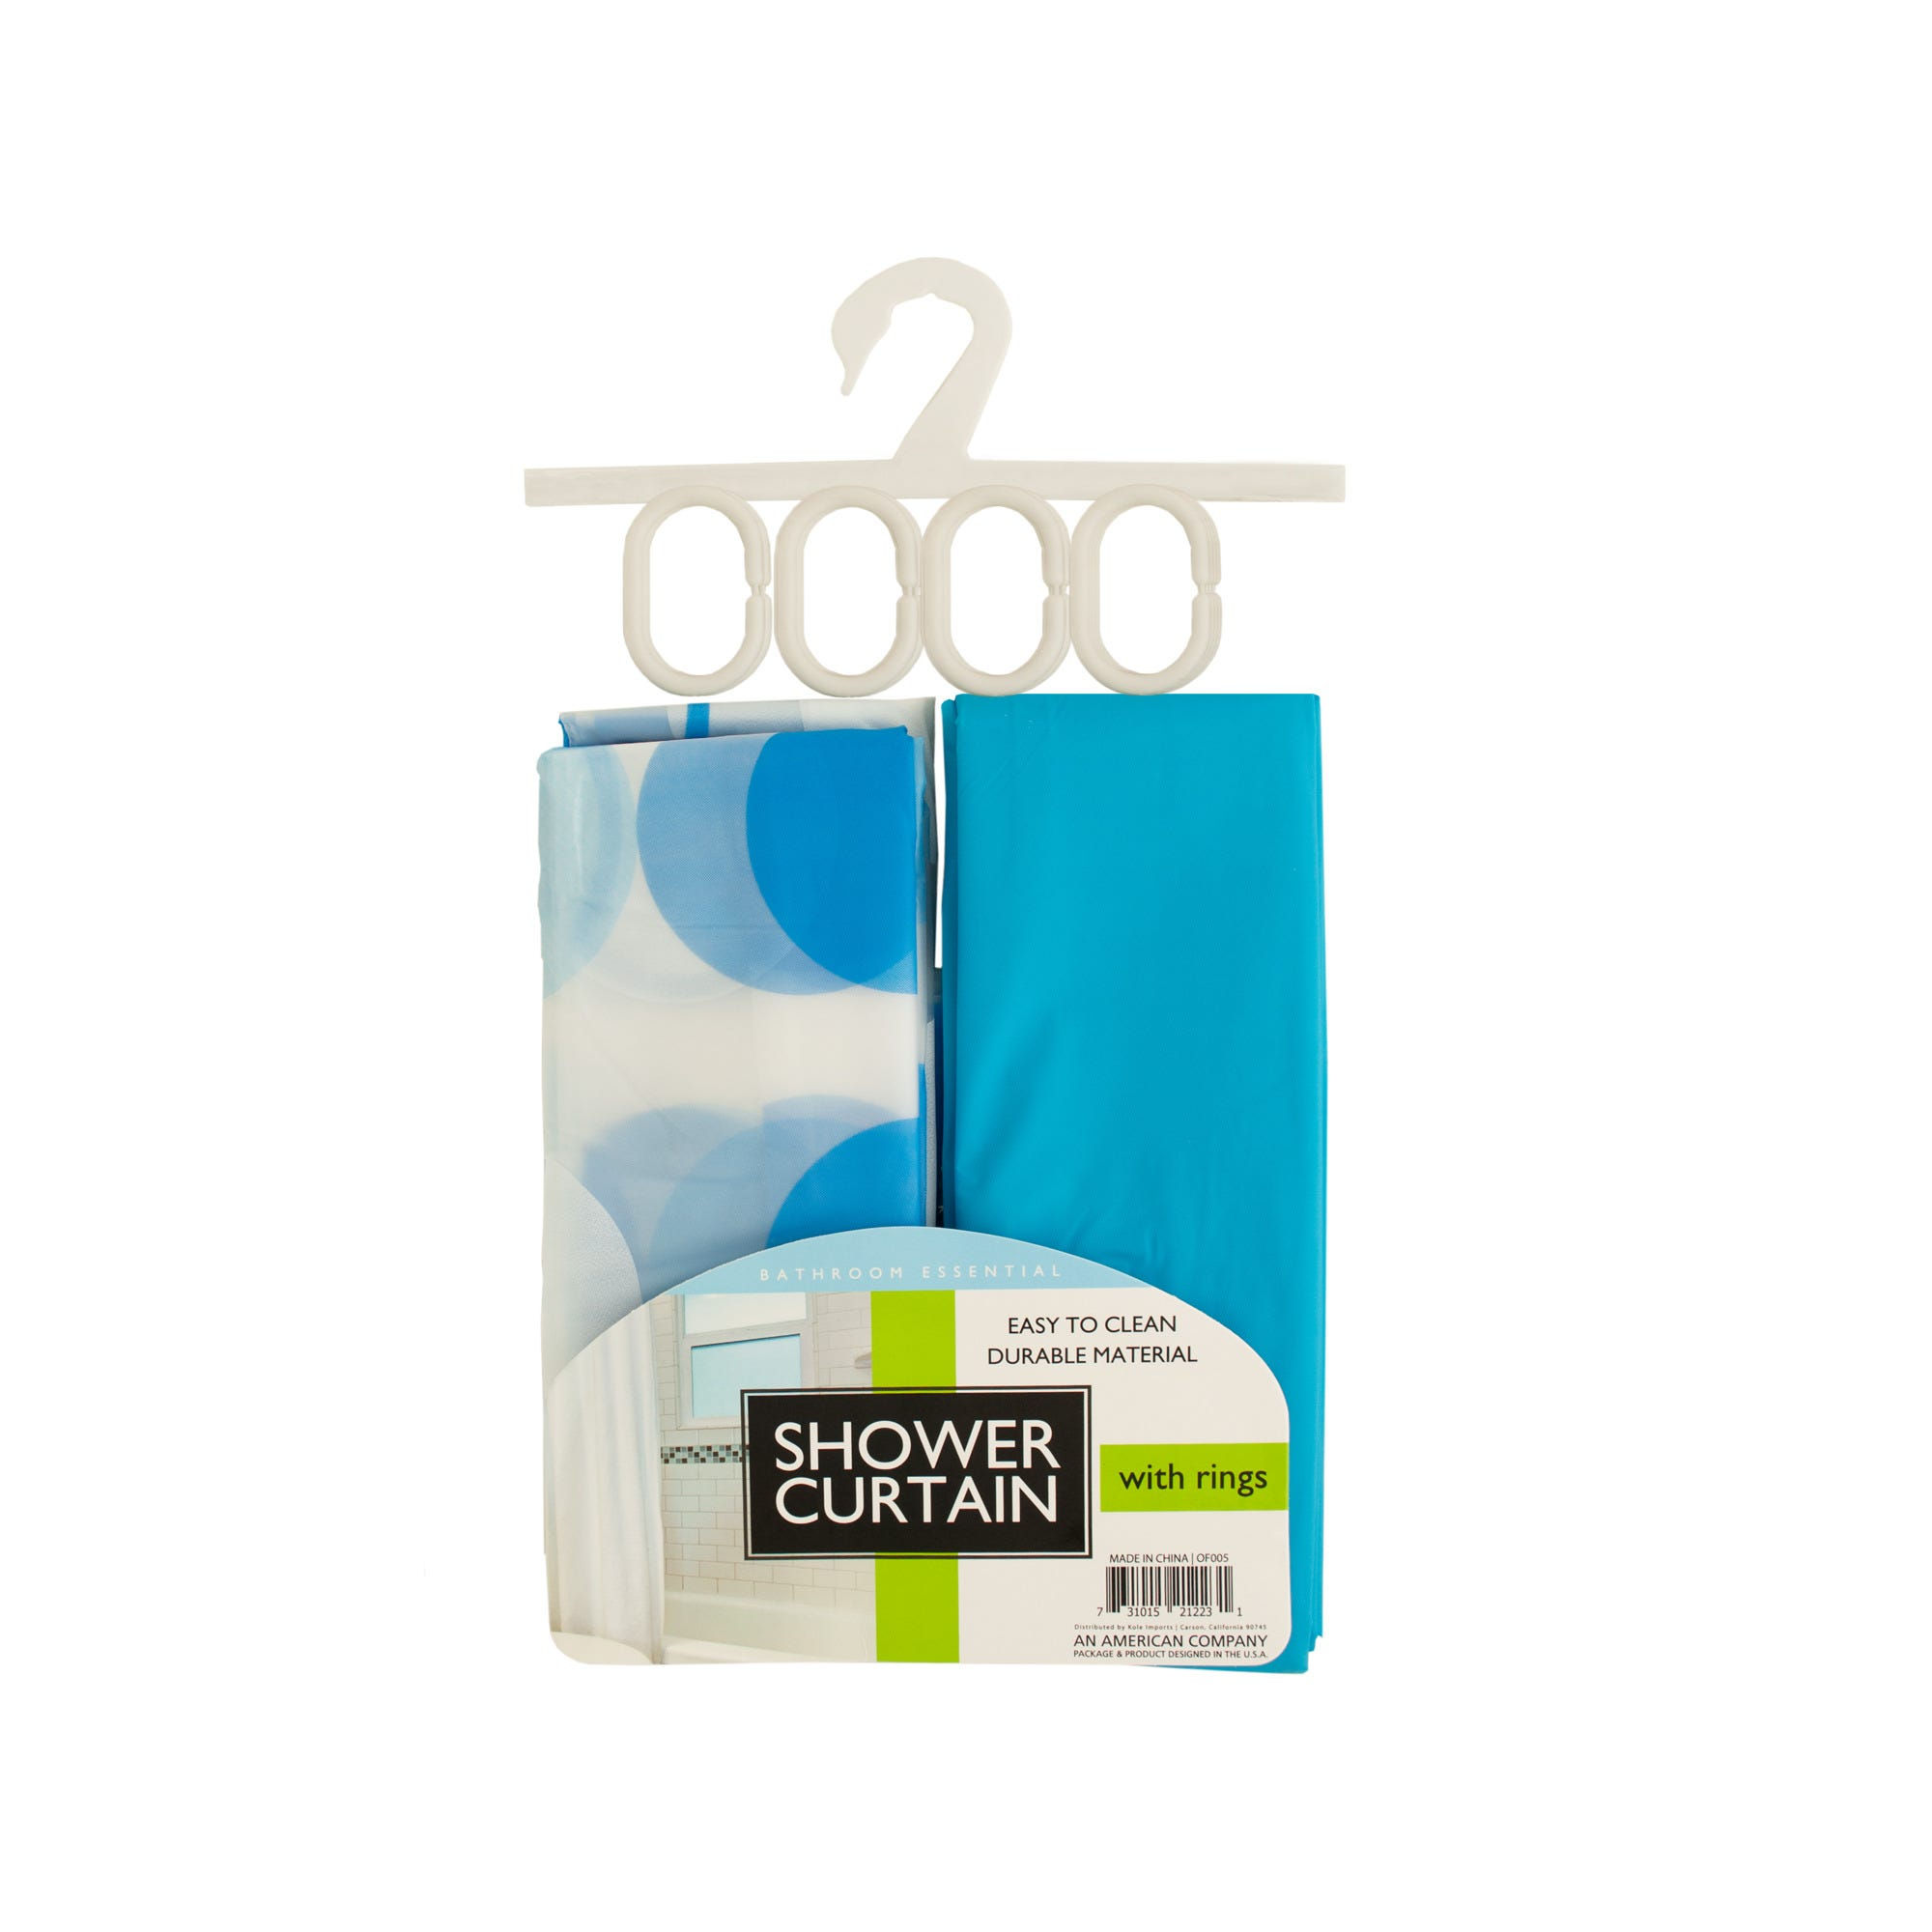 Shower Curtains & RINGs Set- Qty 6